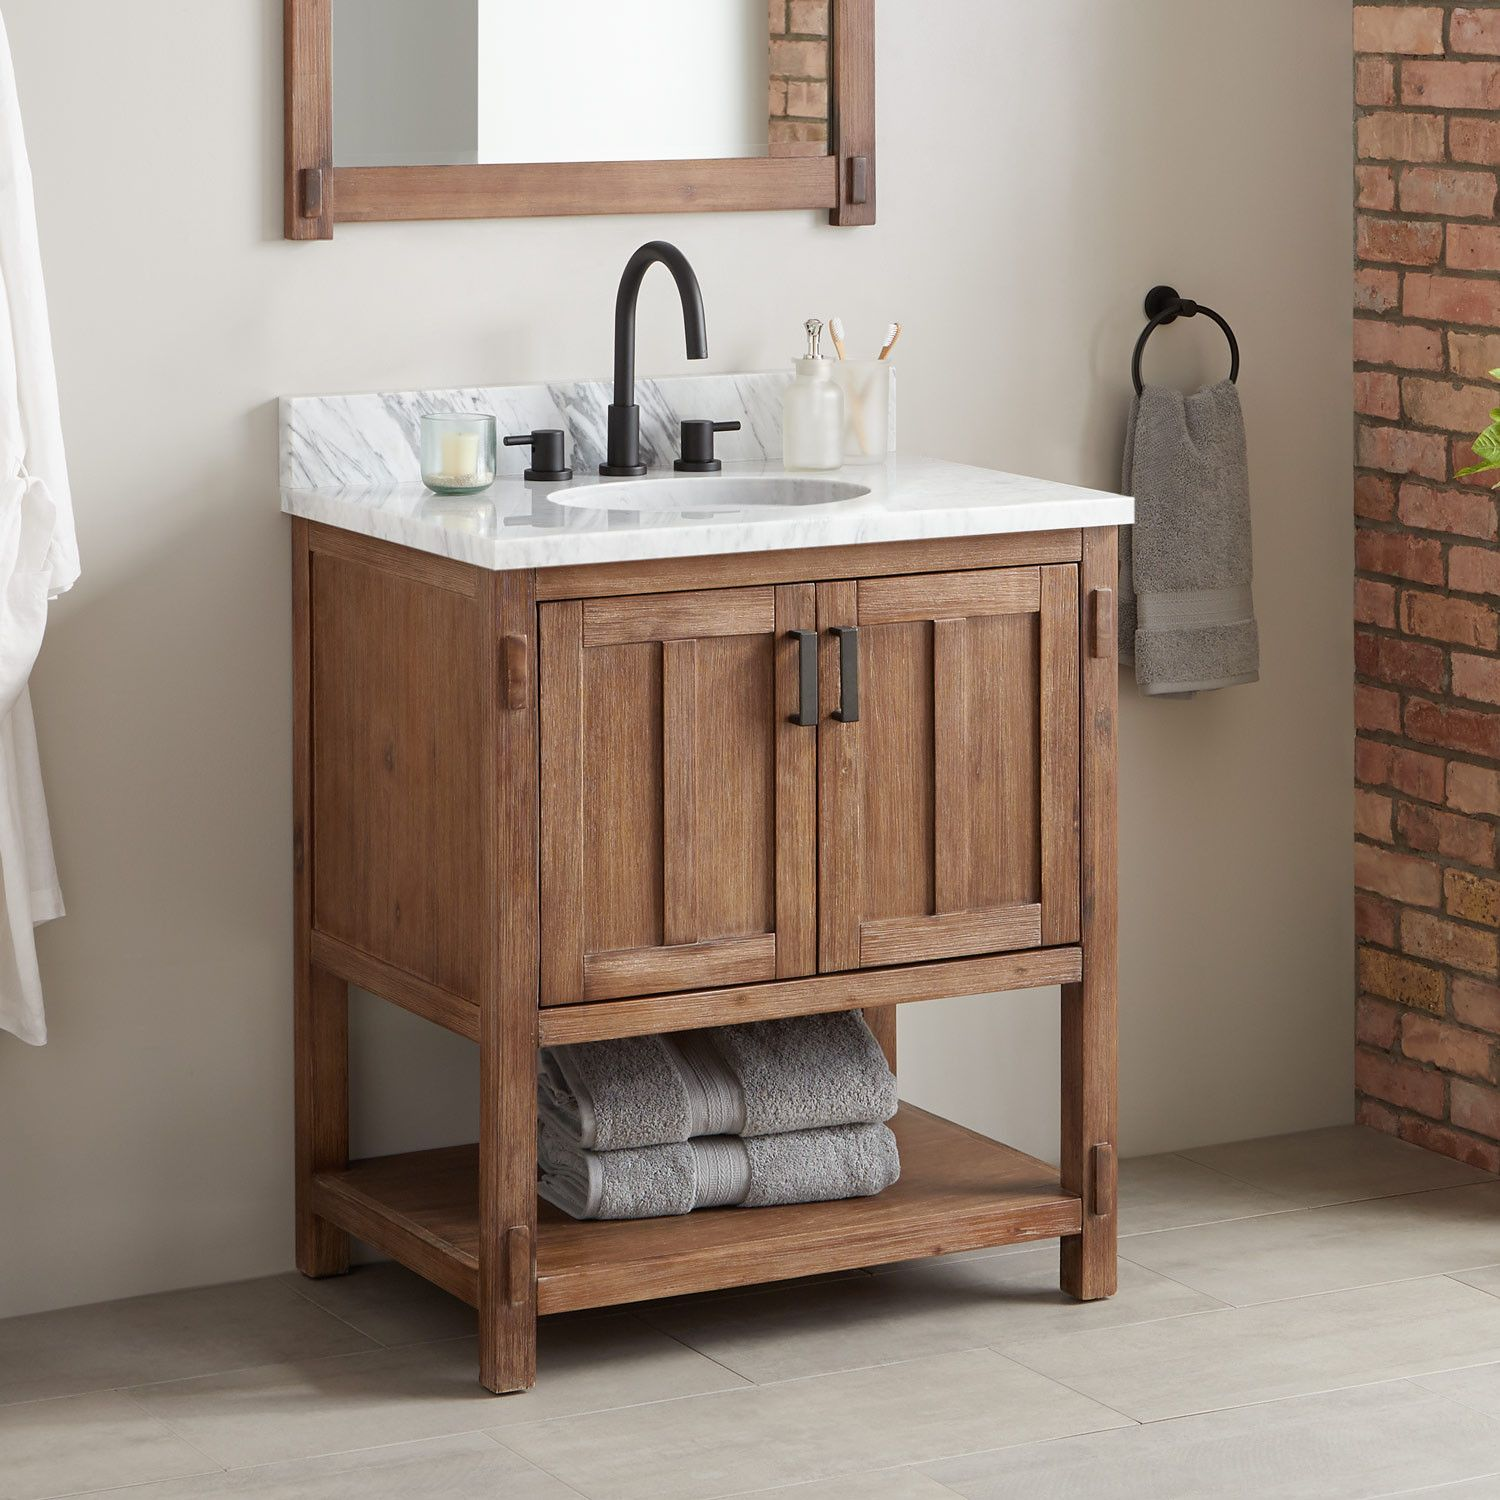 Console Vanity For Undermount Sink